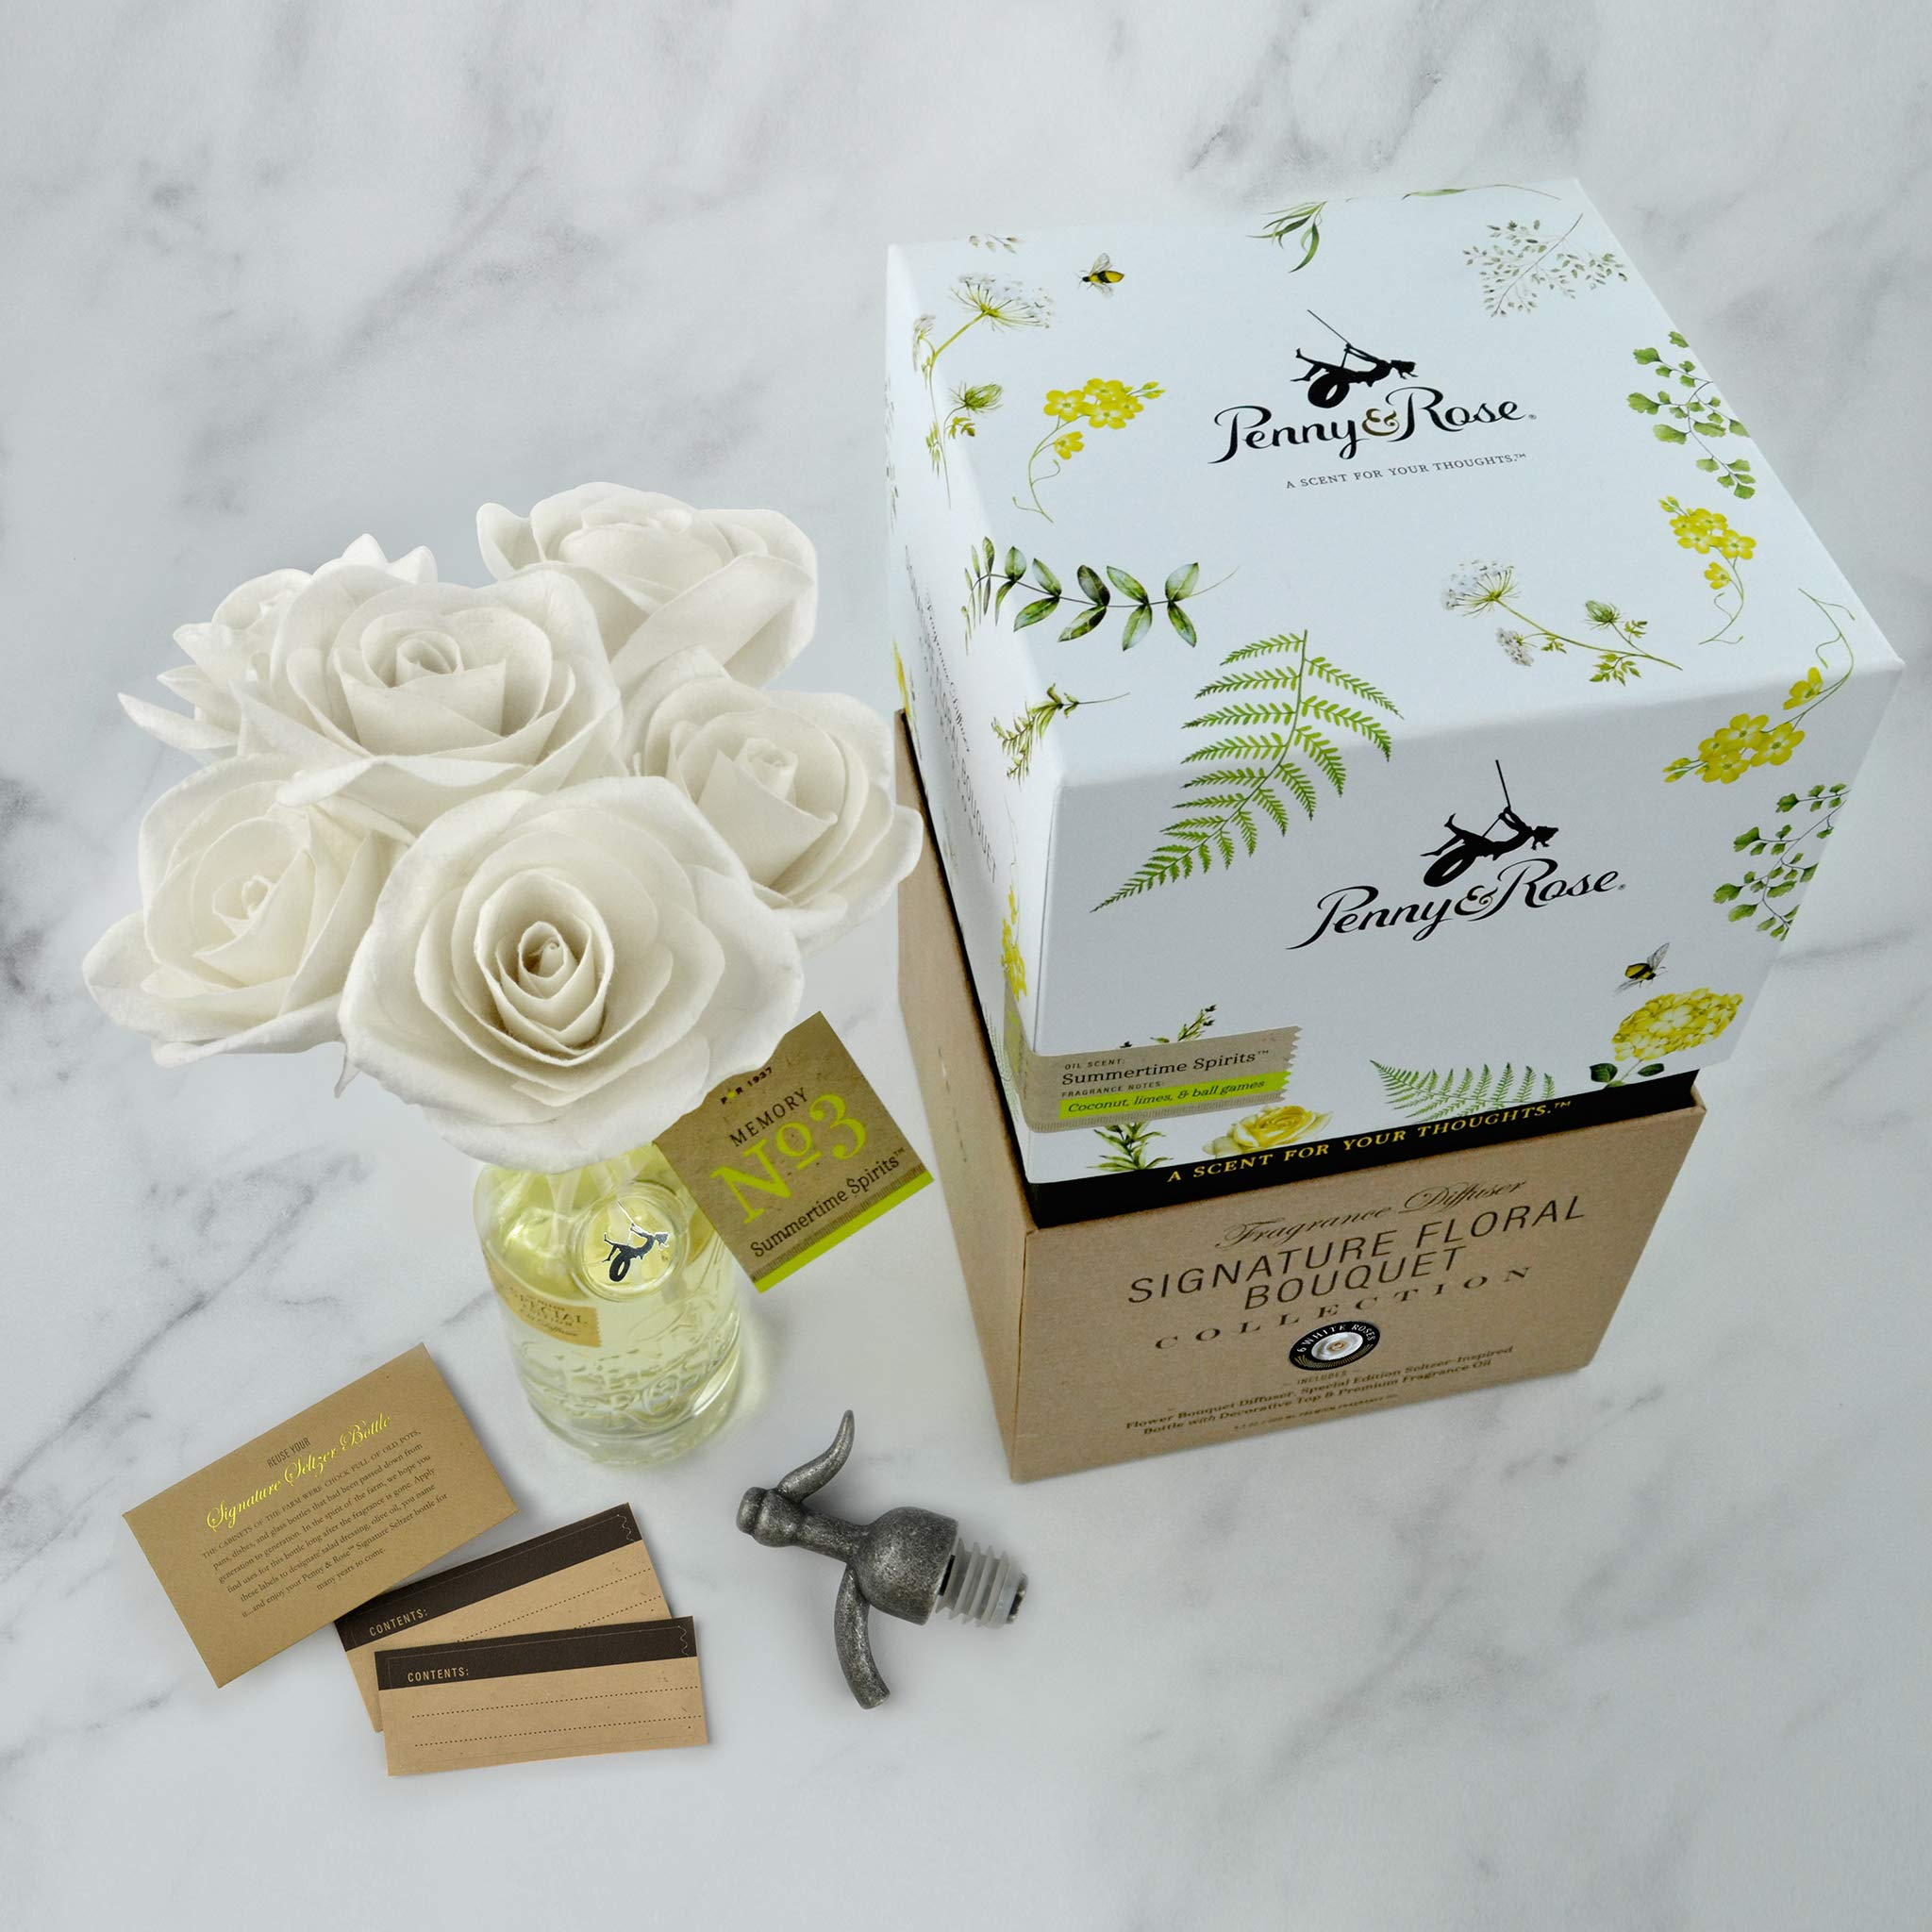 Penny & Rose White Rose Floral Diffuser | Summertime Spirits Oil Scent by PENNY AND ROSE (Image #4)